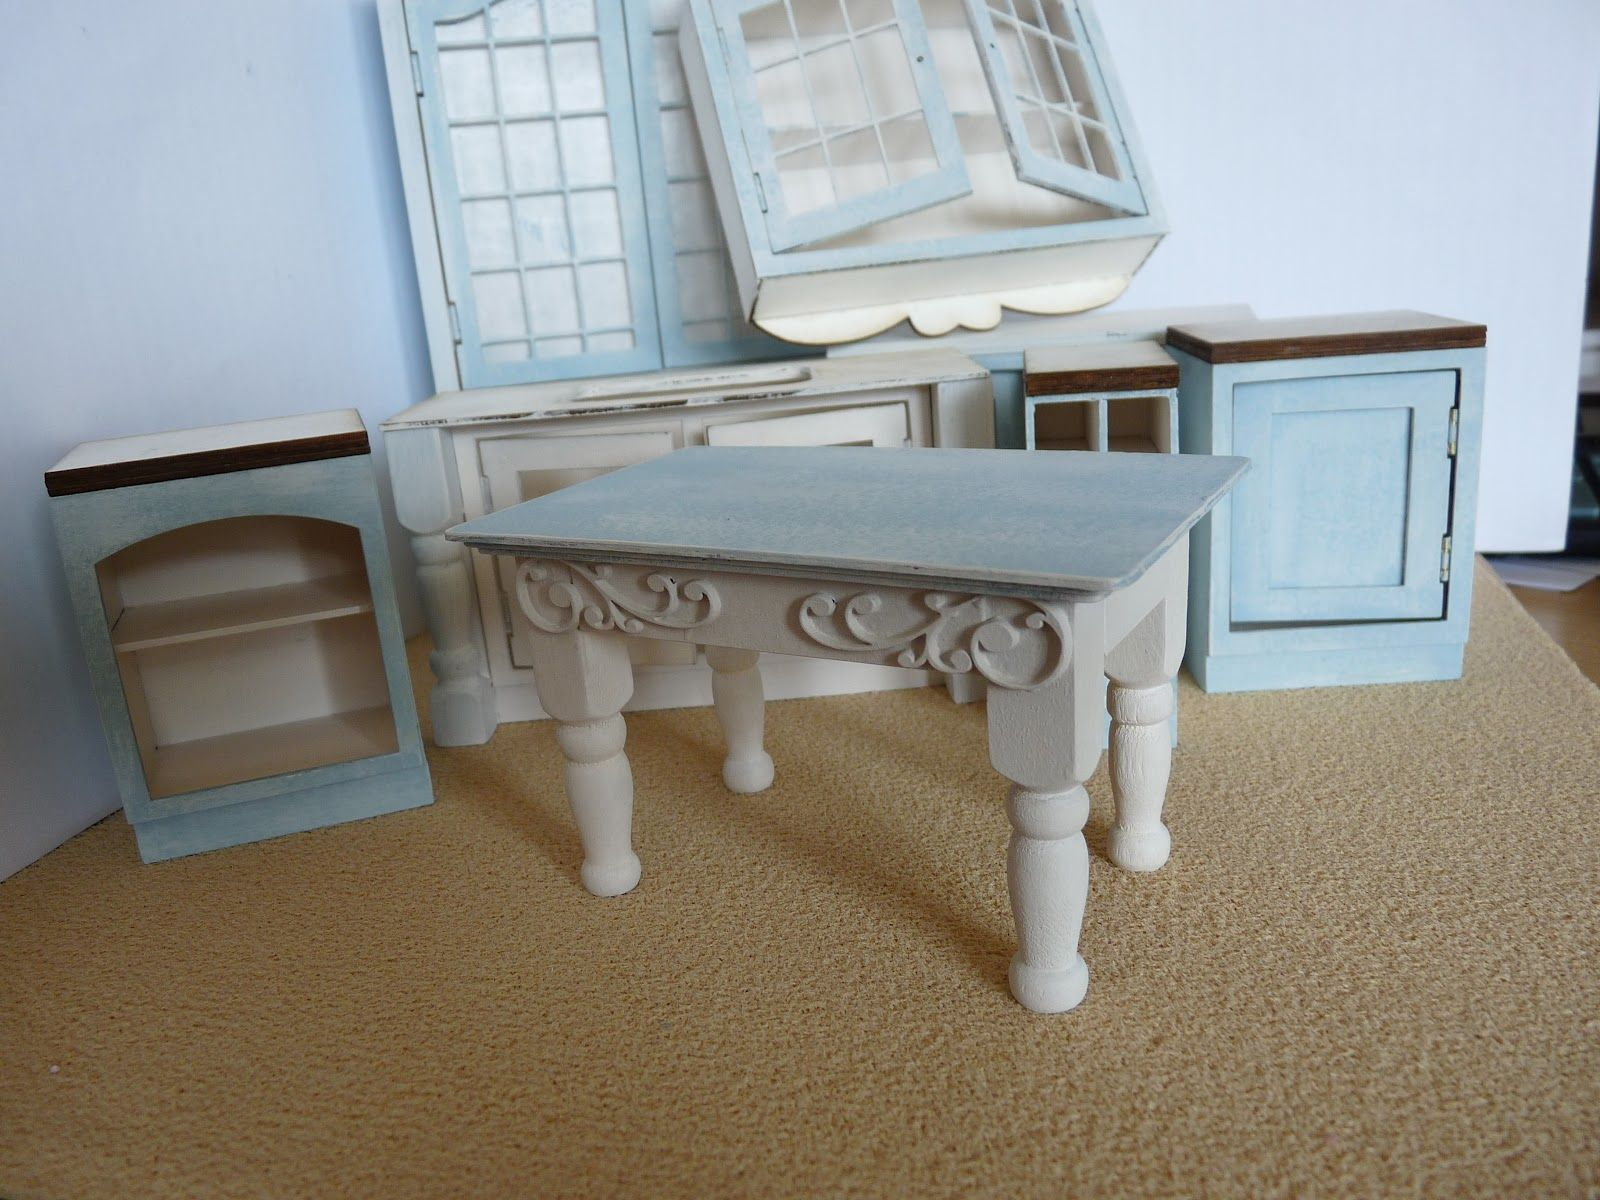 Mollysue Miniatures | Shabby Chic doll house | Pinterest ...